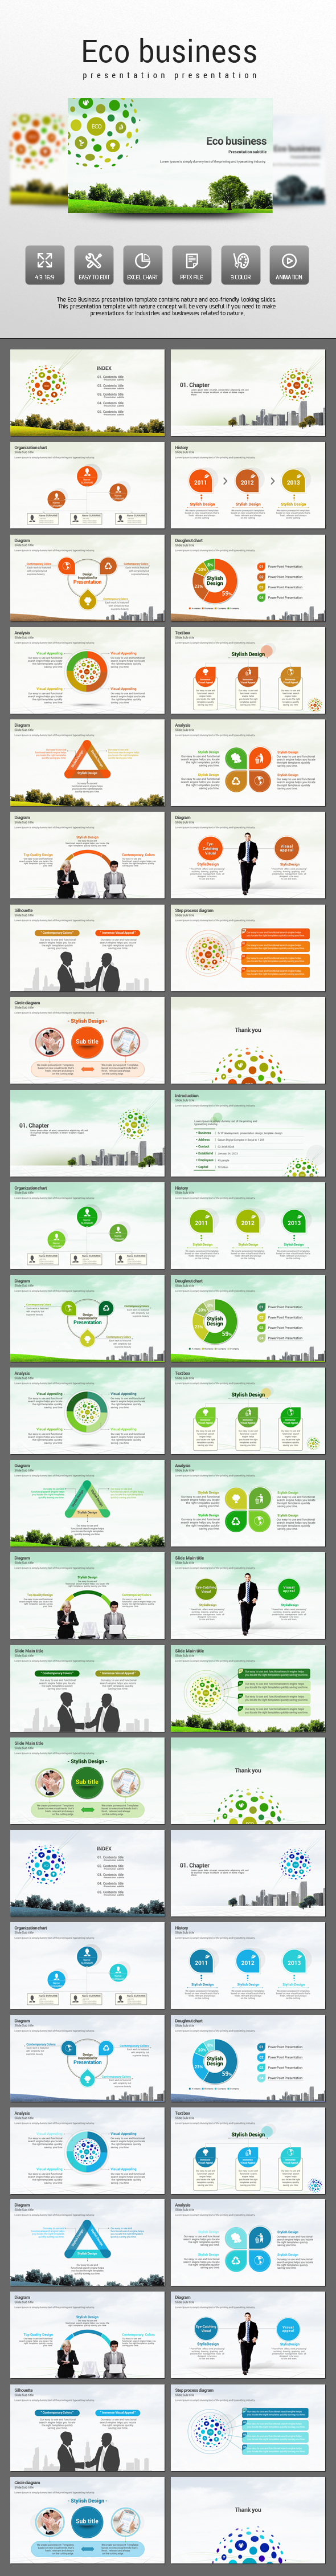 Eco Business - PowerPoint Templates Presentation Templates